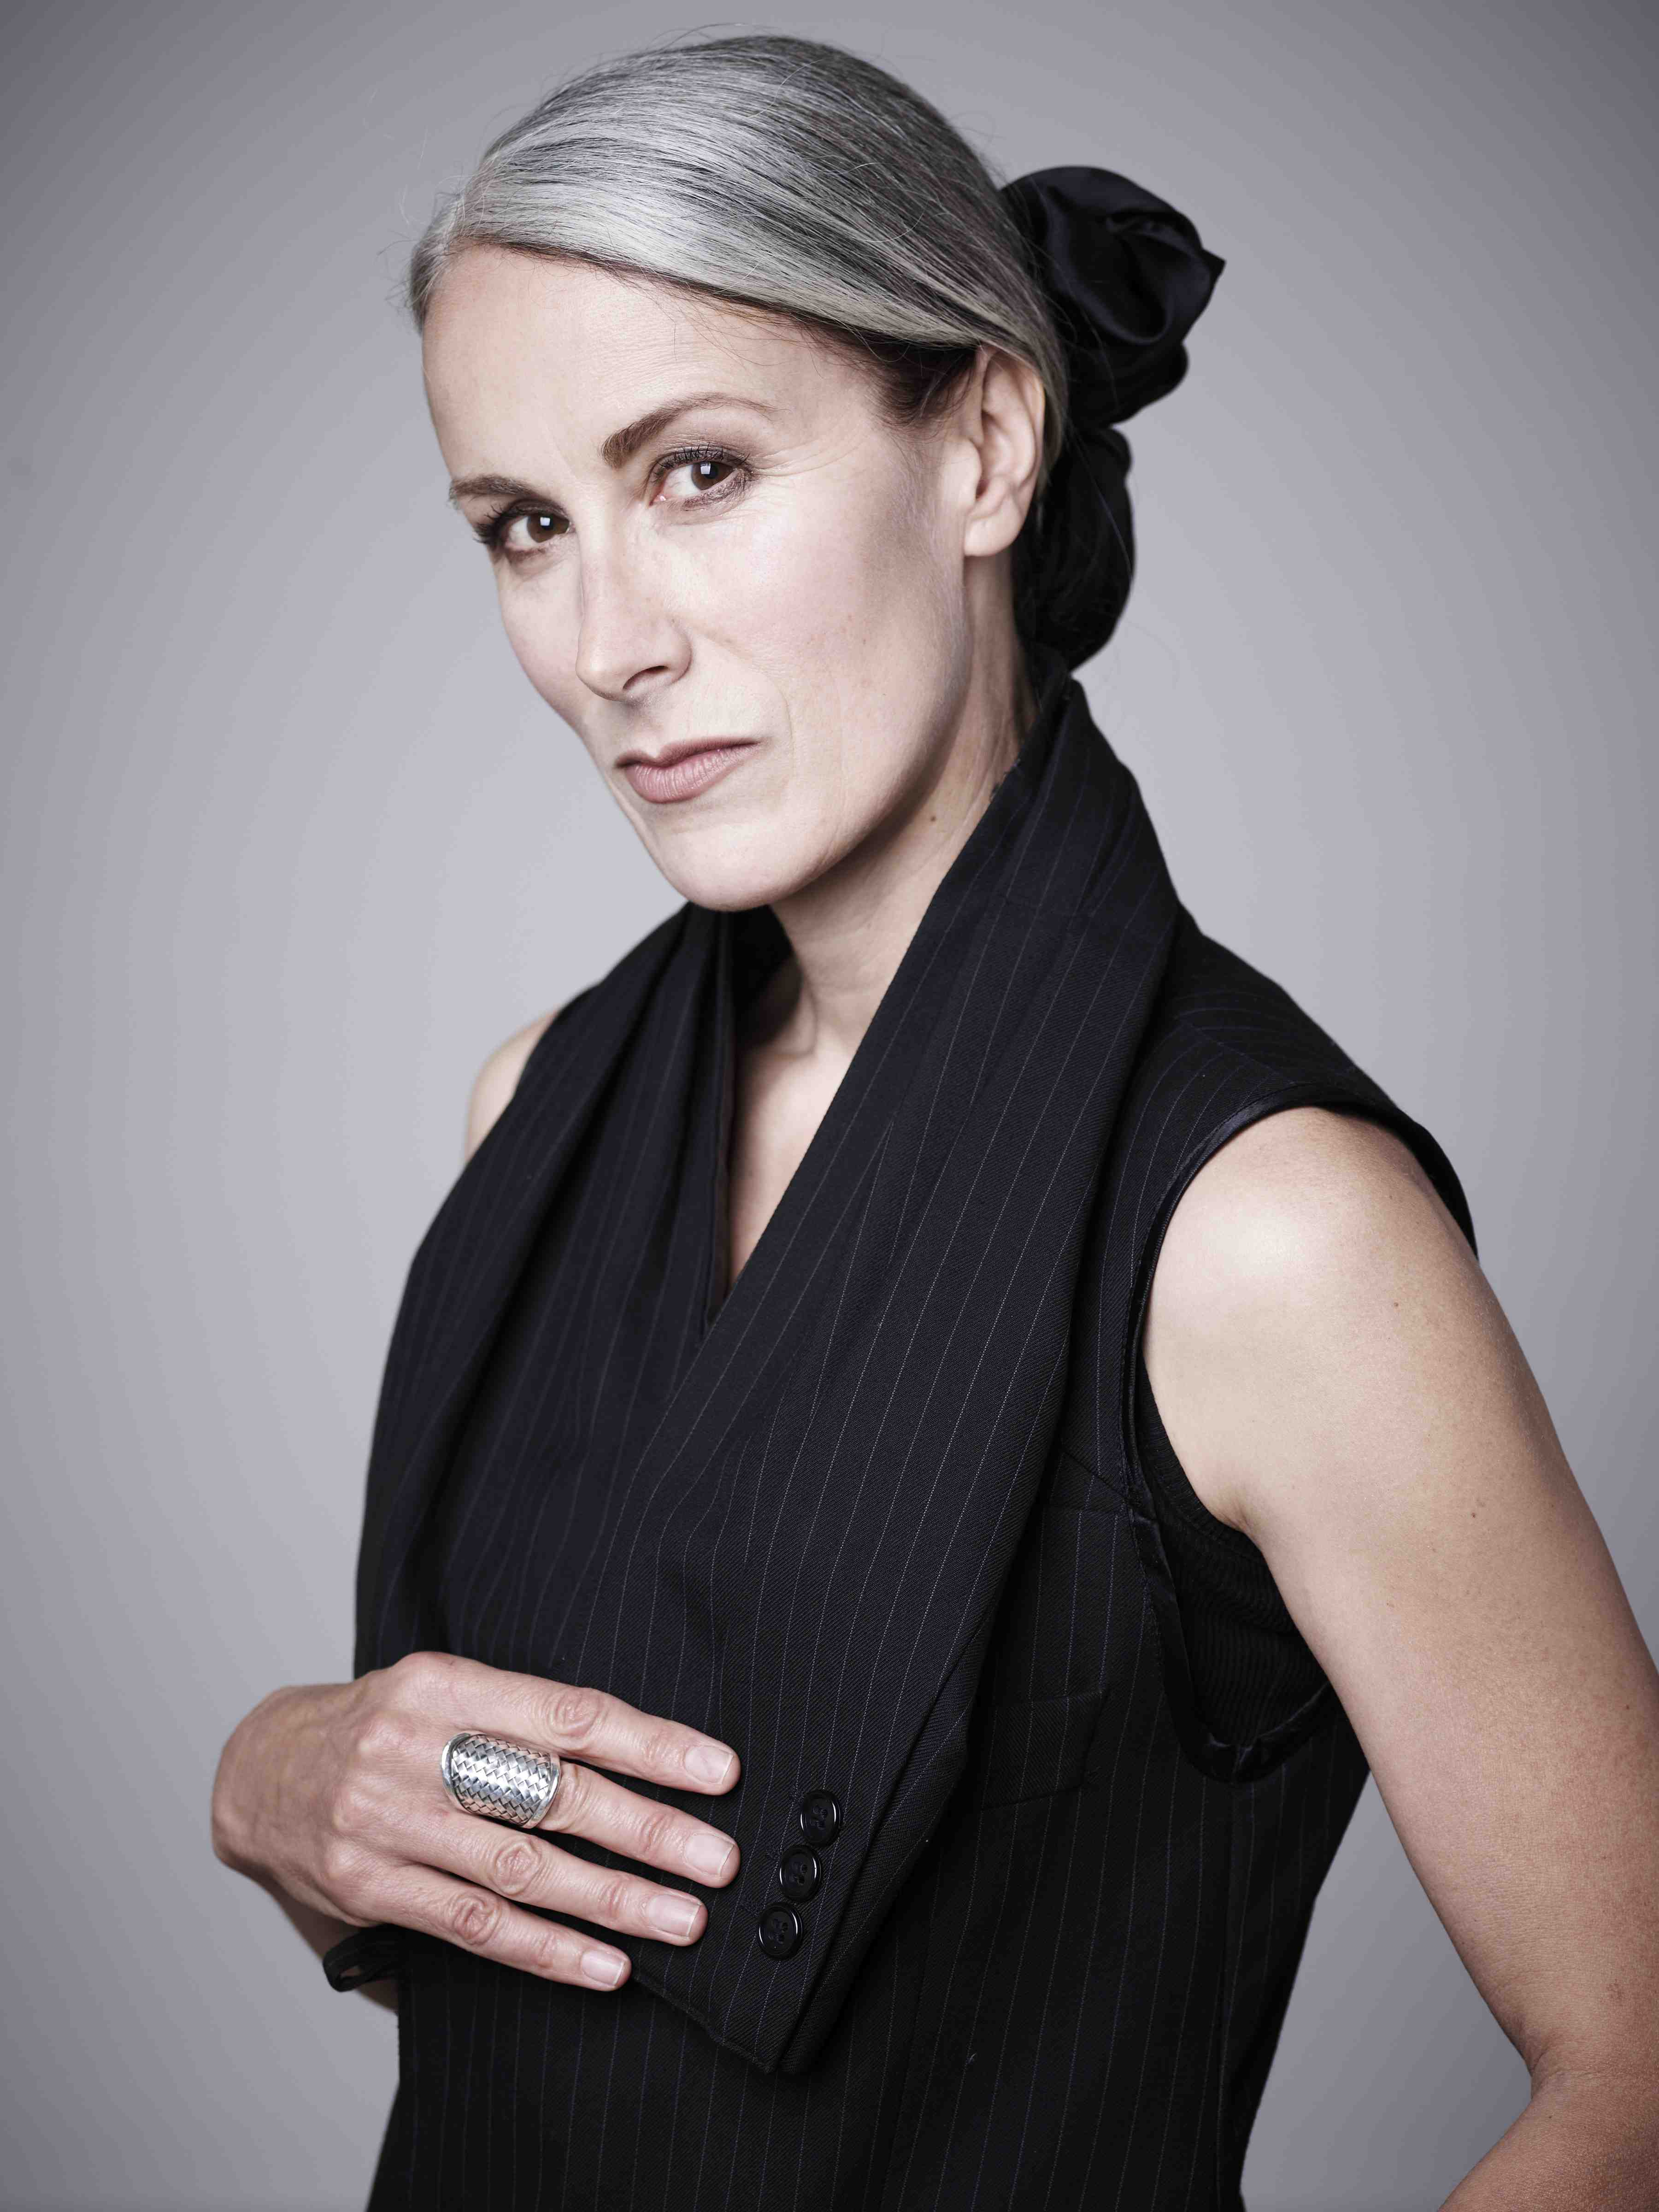 Caryn-Franklin - fashion -commentator-and-activist